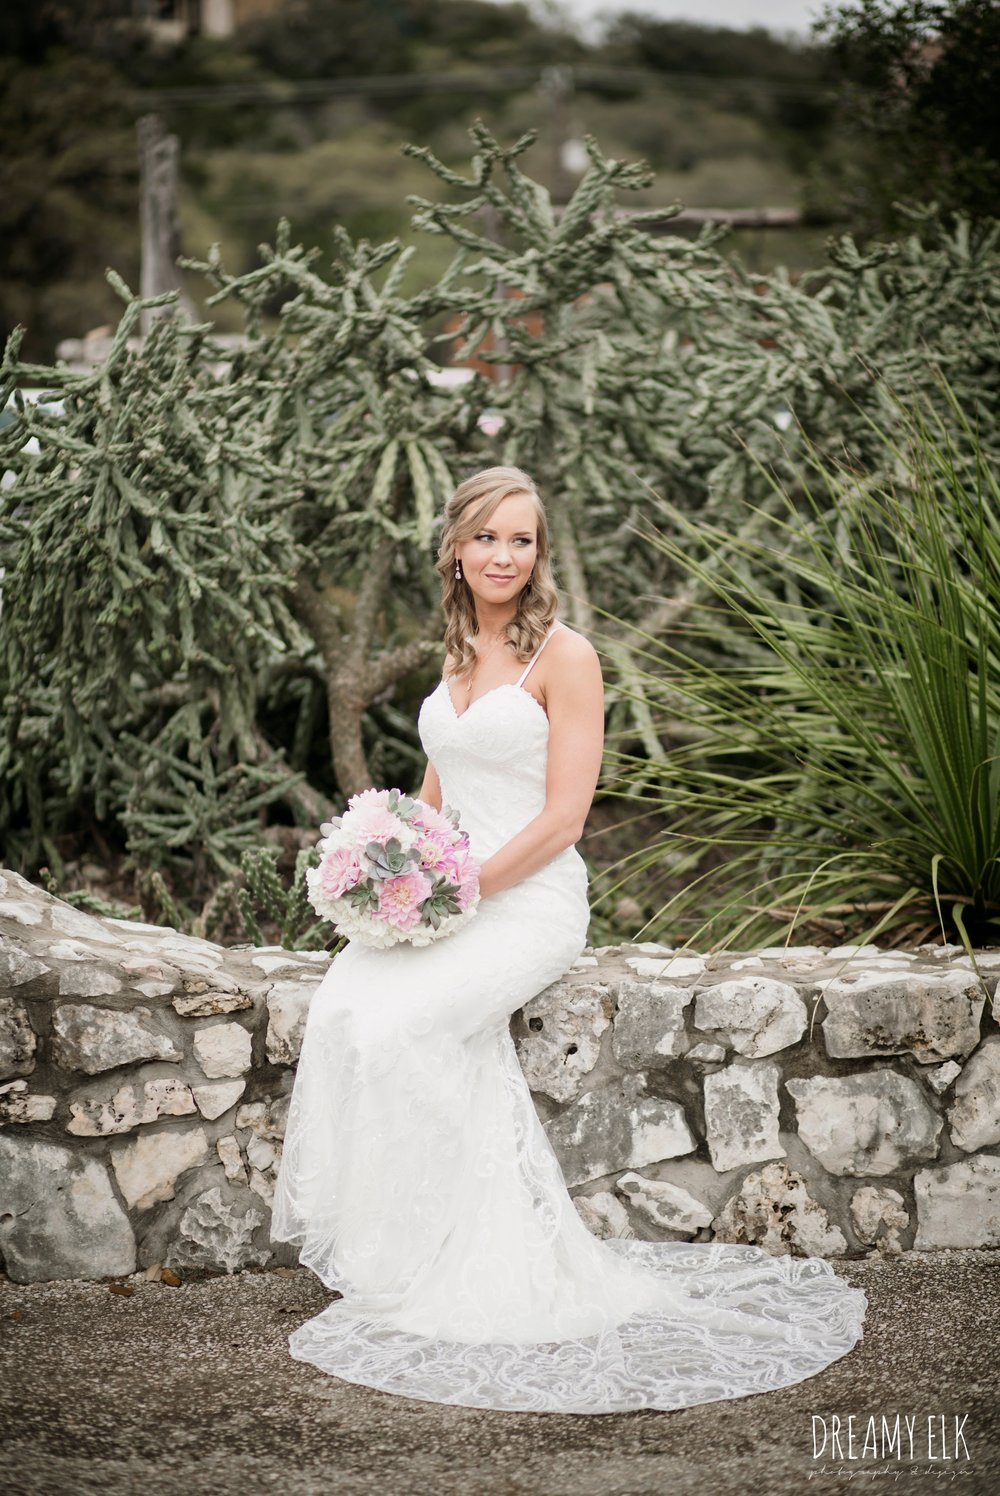 madame makeup and hair, backless column sheath wedding dress, heb blooms, succulent and pink wedding bouquet, cloudy march wedding photo, canyon springs golf club wedding, san antonio, texas {dreamy elk photography and design}